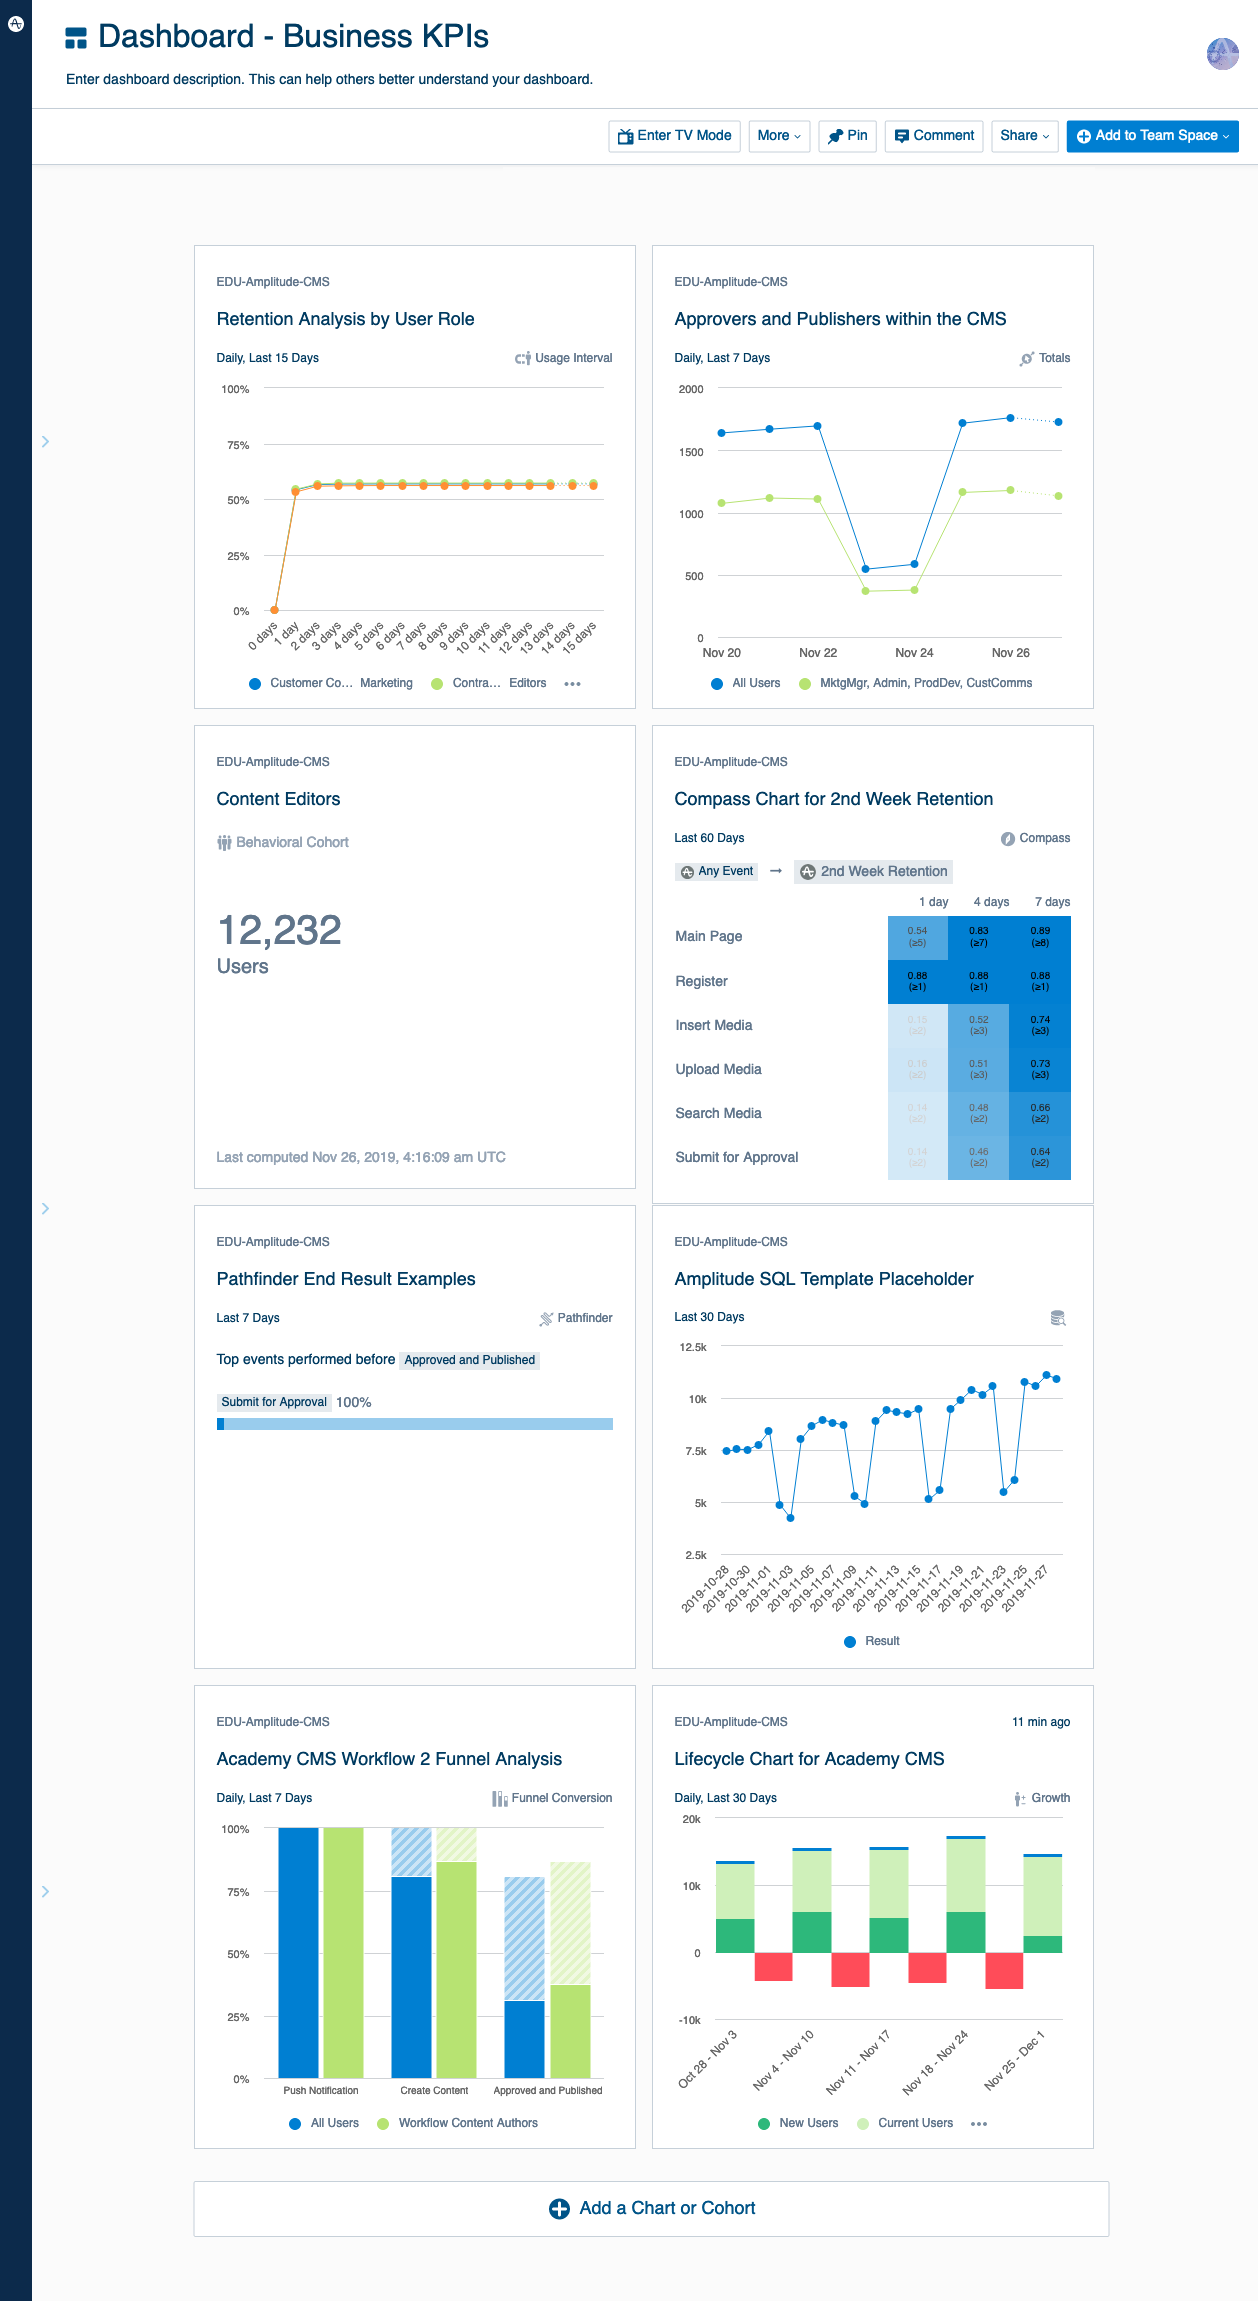 Dashboard_-_Business_KPIs_-_Amplitude_2019-11-27.png